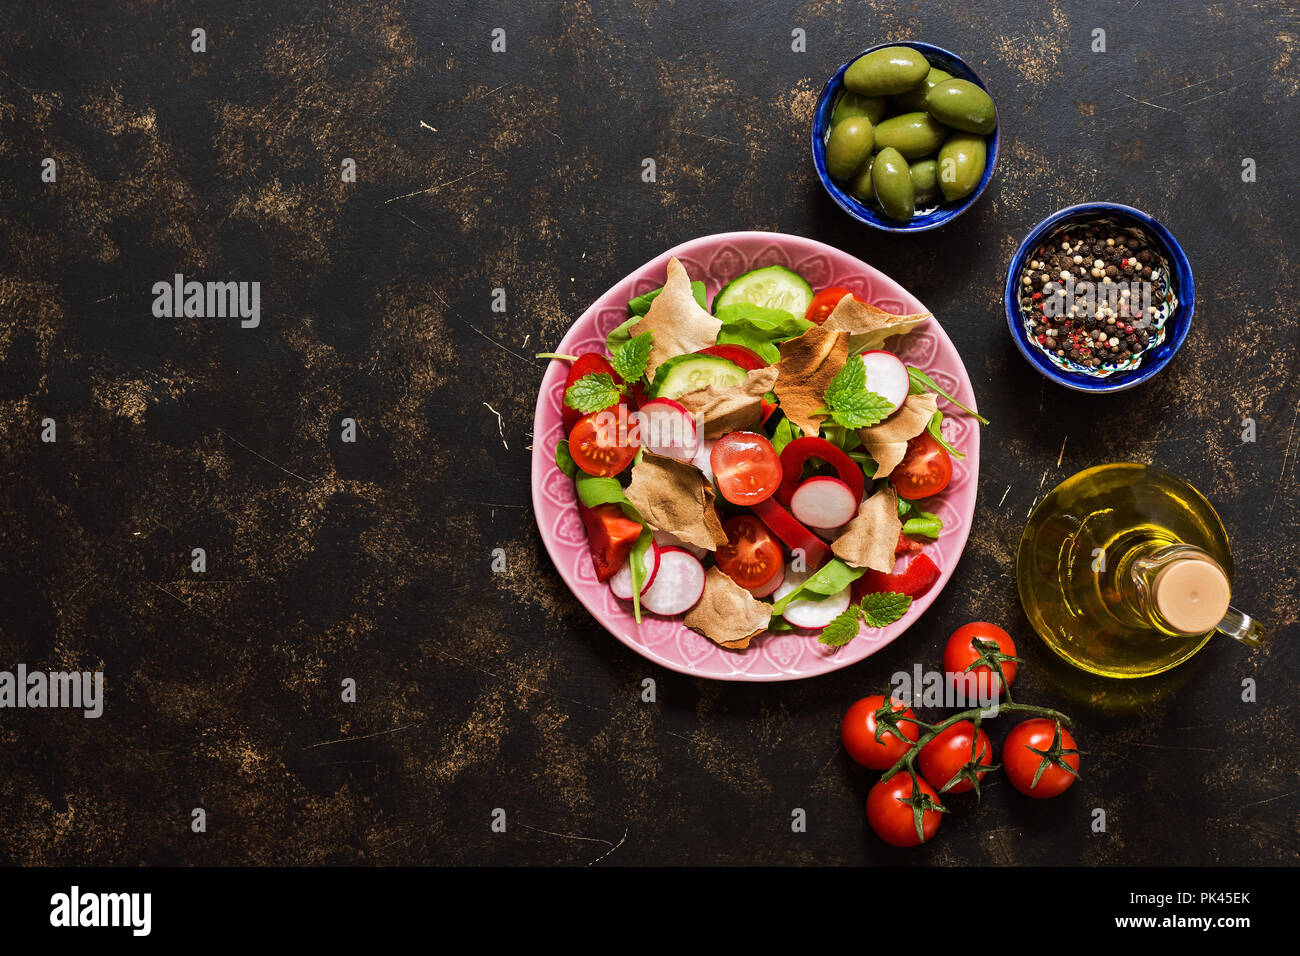 Fattoush Arabian salad. Brown background, top view, space for text - Stock Image